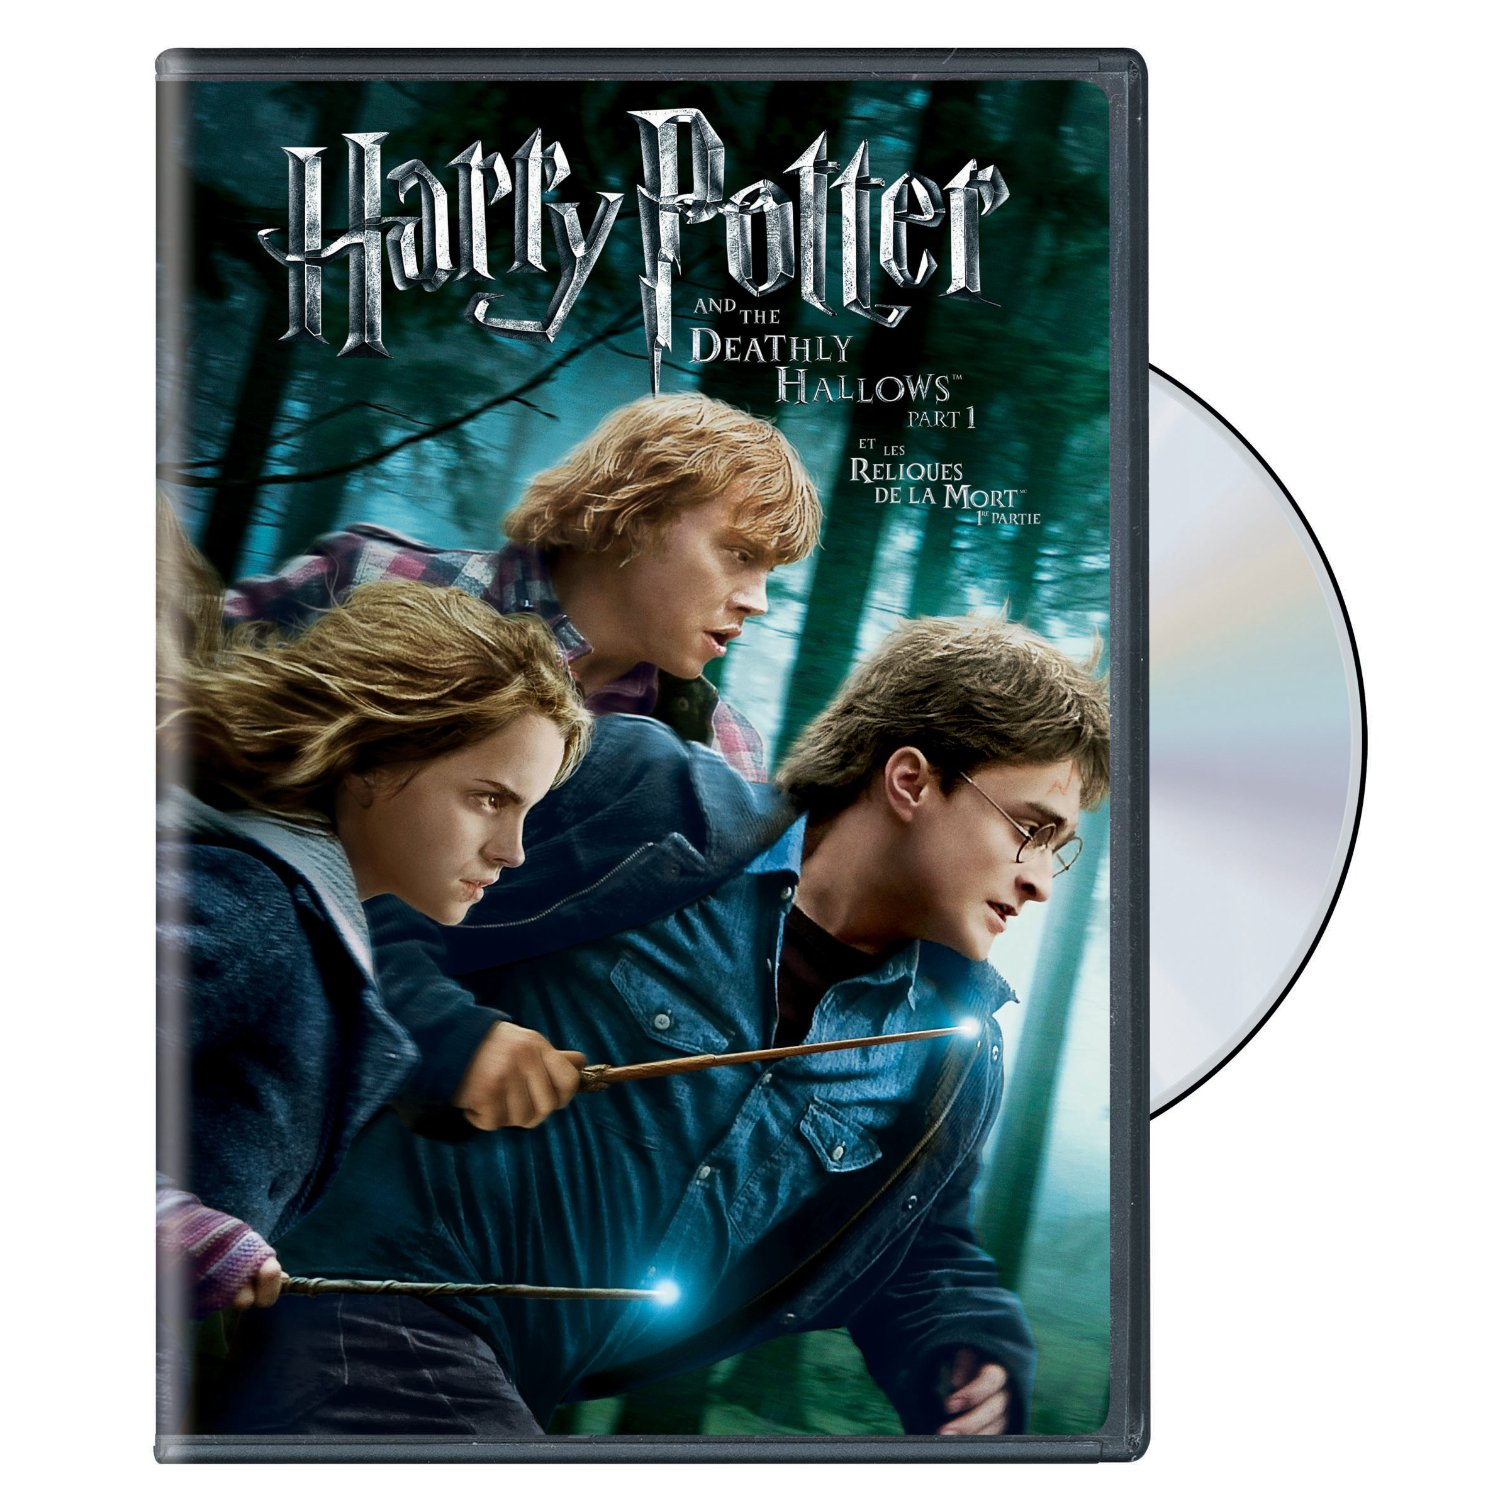 amazon canada deals harry potter and the deathly hallows dvd part 1 and part 2 only 5 each. Black Bedroom Furniture Sets. Home Design Ideas